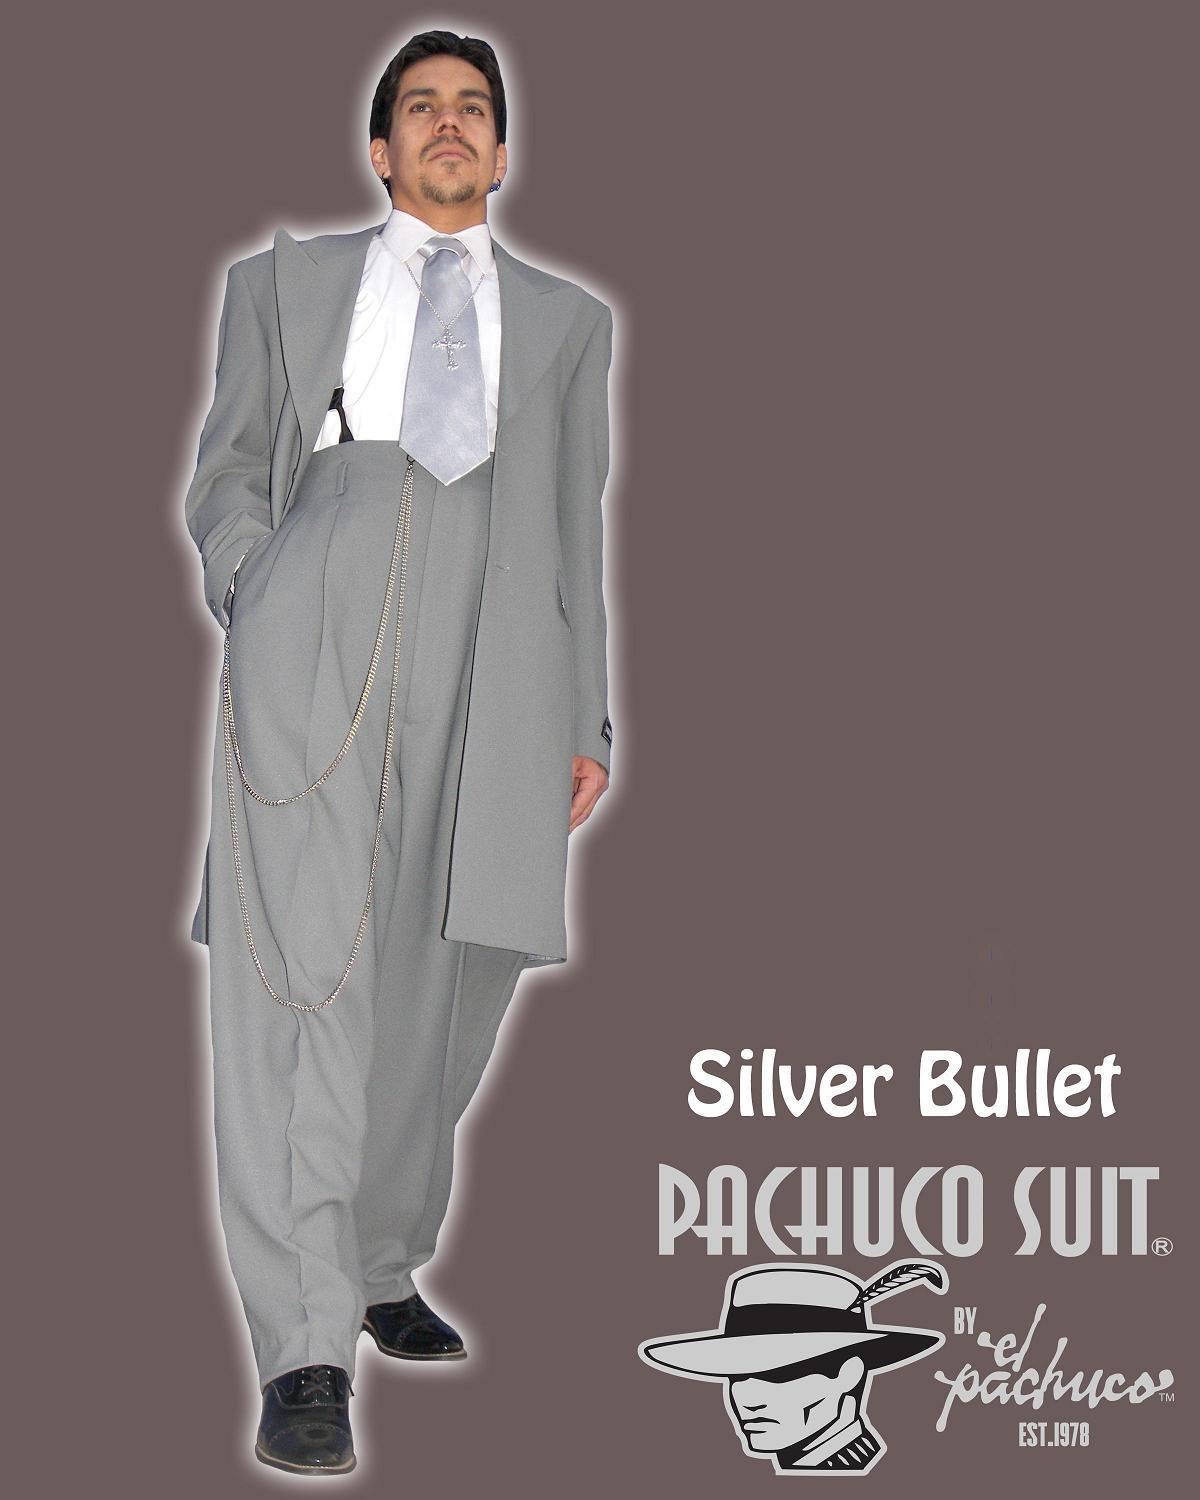 Charming Men\'s Wedding Suits try el pachuco zoot suits Handsome ...